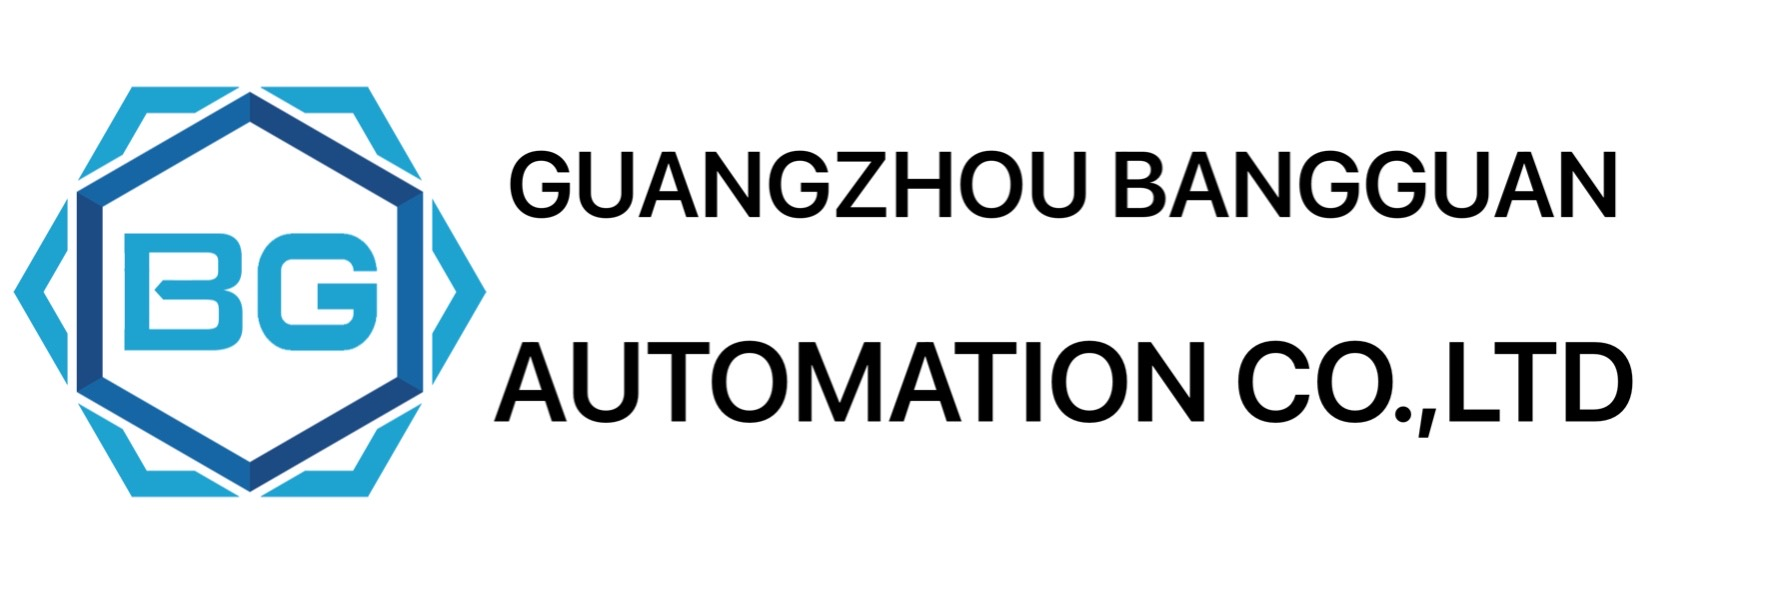 Send Inquiry - Suzhou BangGuan Automation Co., LTD